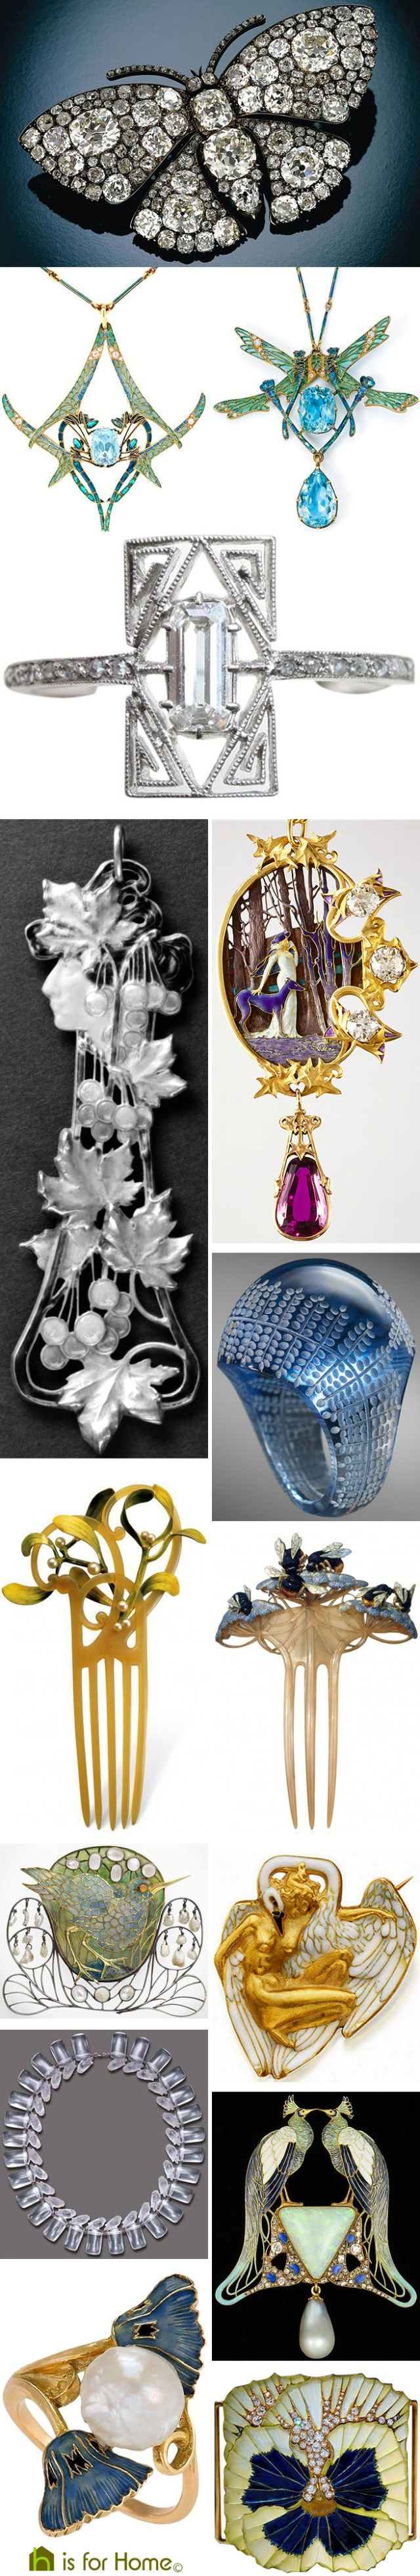 Mosaic of René Lalique jewellery designs | H is for Home